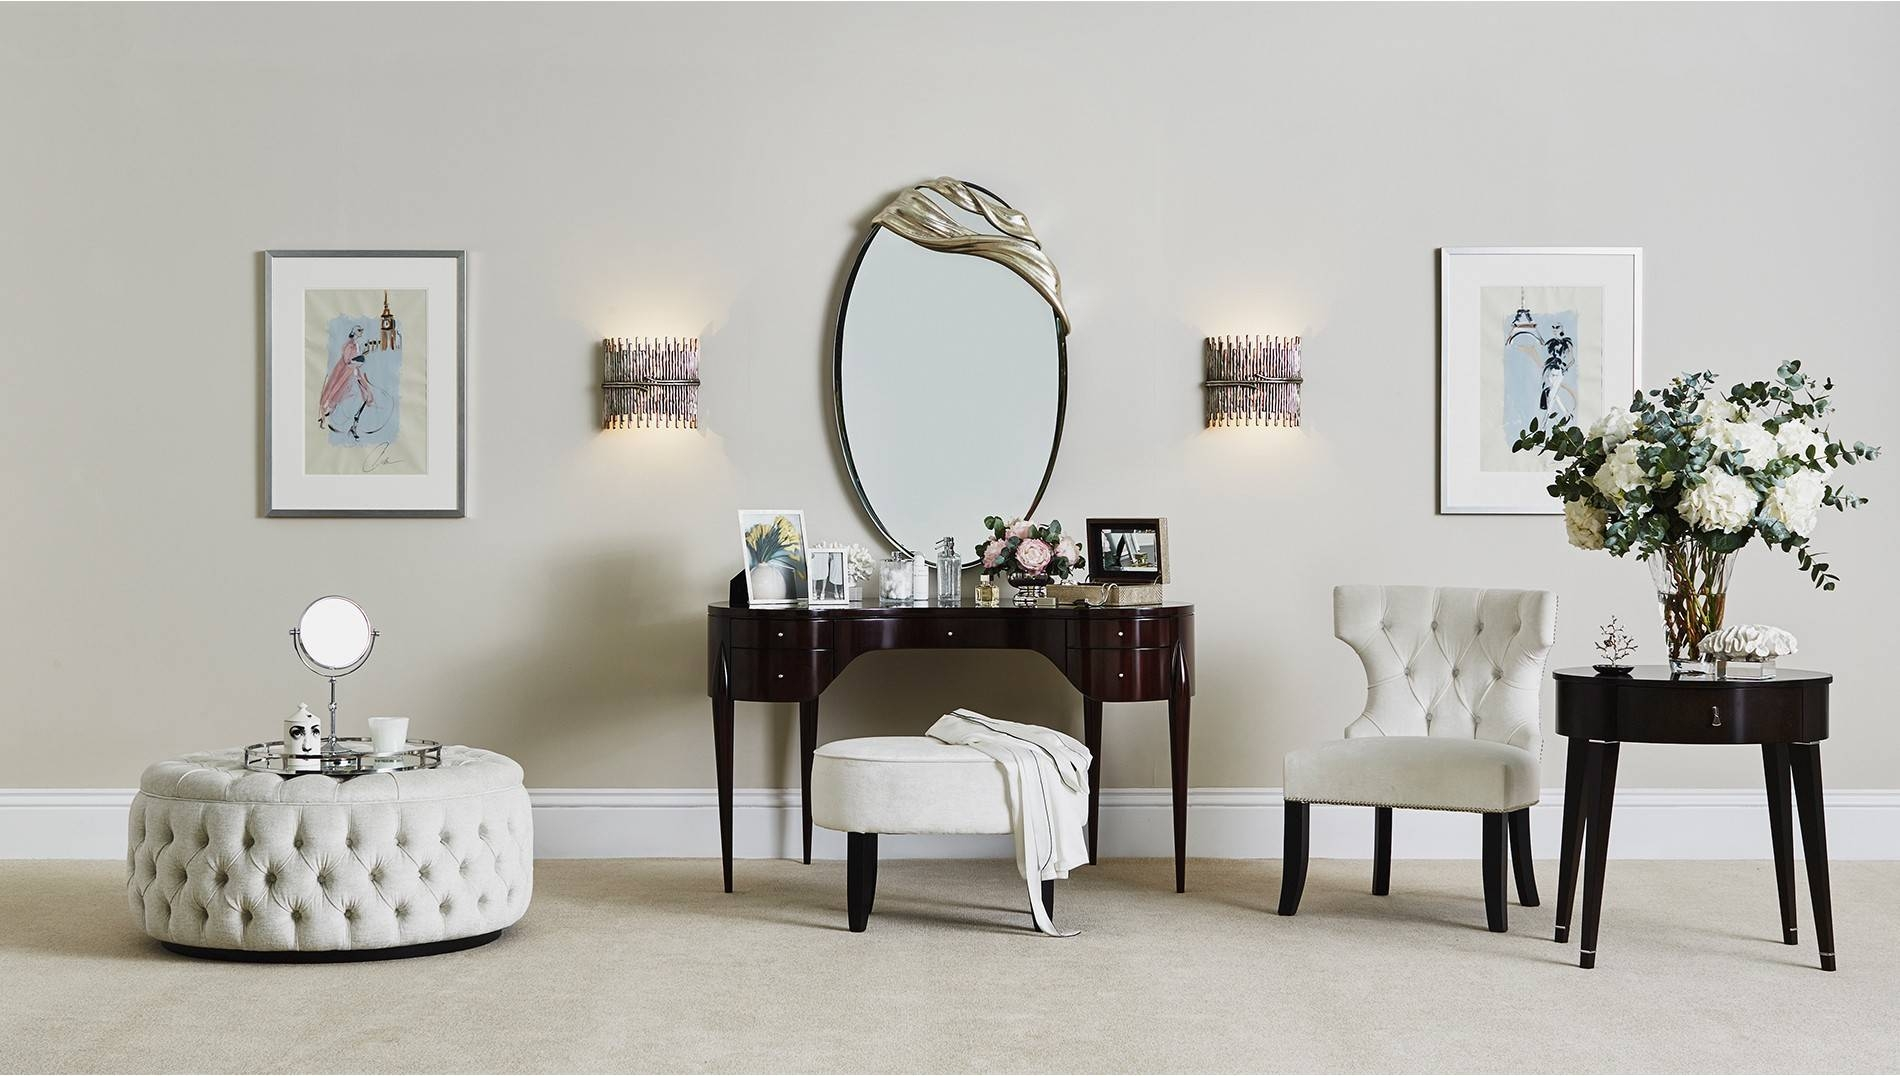 Cosmetic Mirror With Swarovski Crystals - Luxdeco with regard to Swarovski Mirrors (Image 17 of 25)